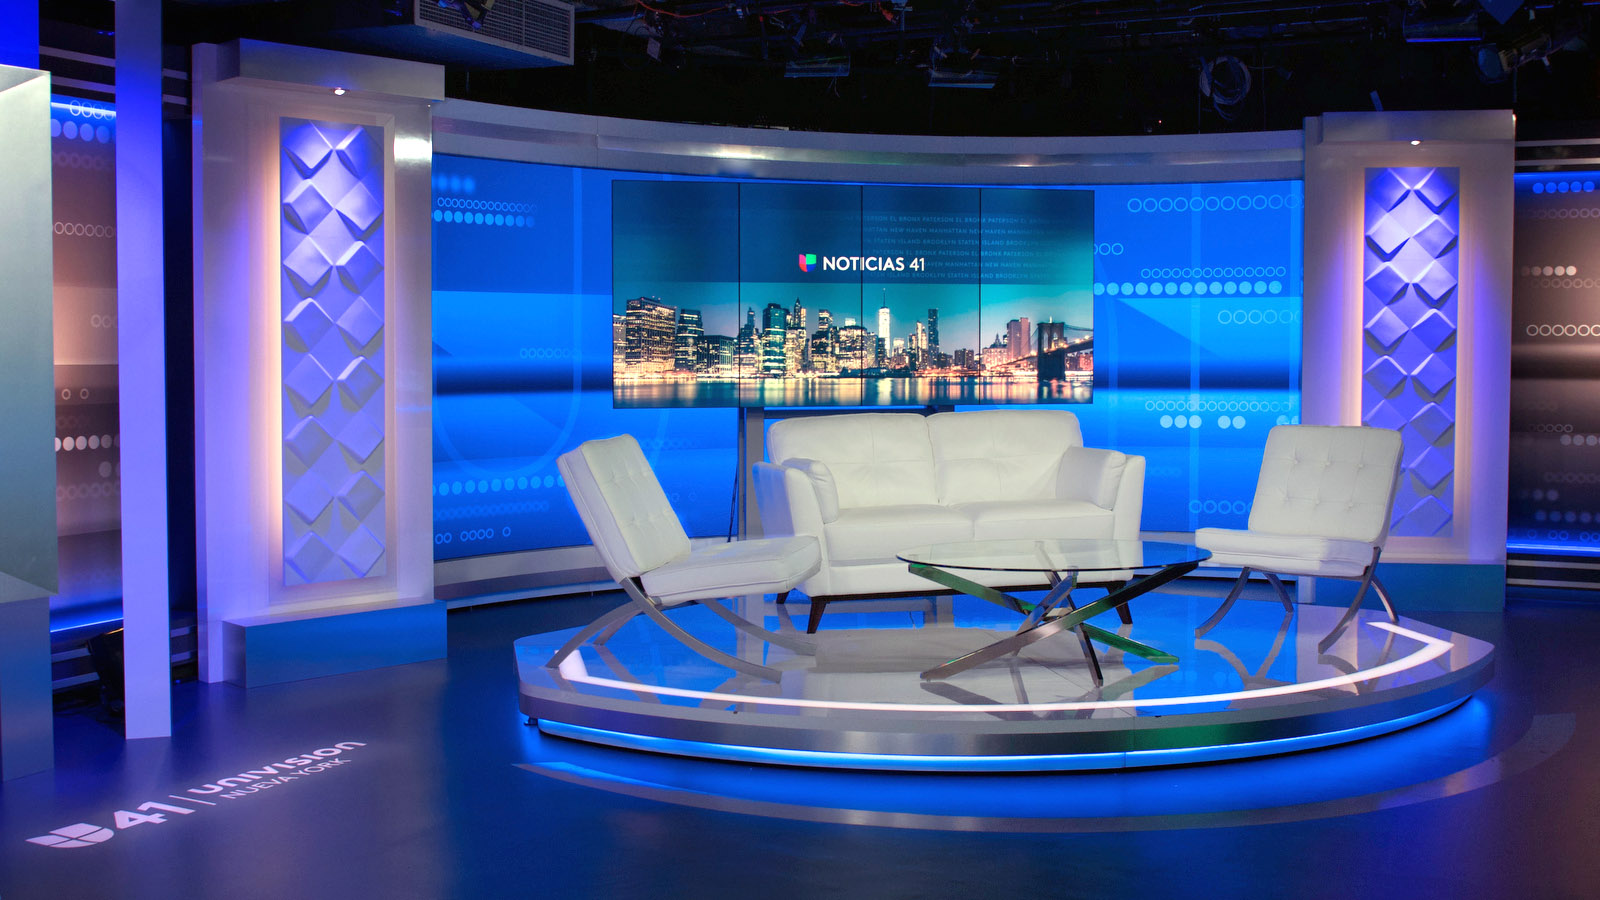 NCS_Univision-41-New-York-City-Studio-Pulso-Design_004